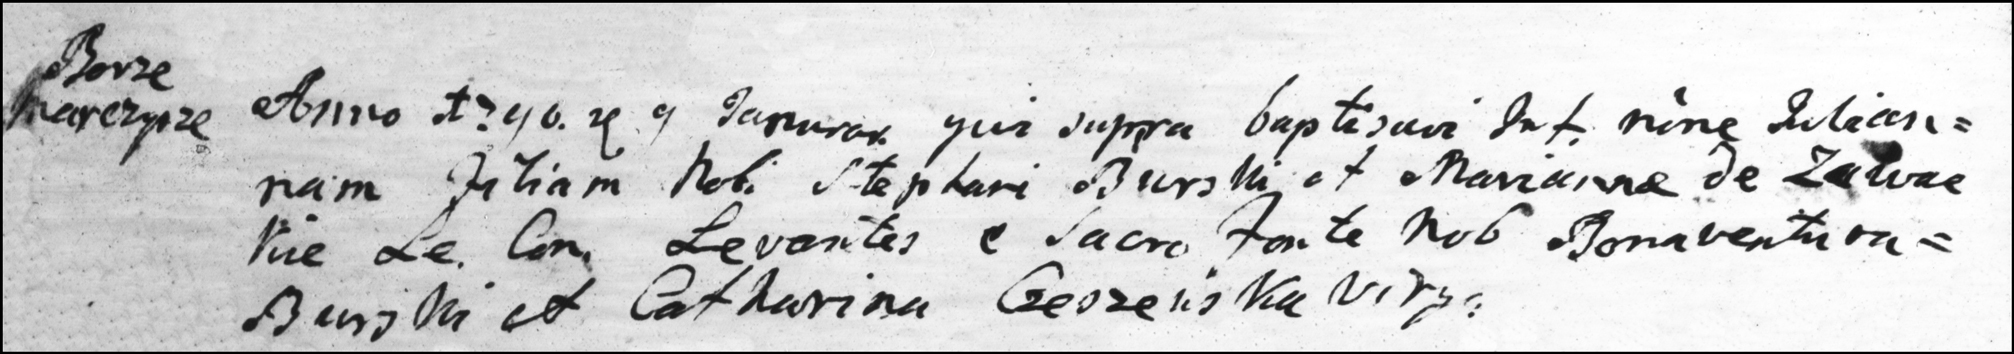 The Birth and Baptismal Record of Julianna Burska - 1790